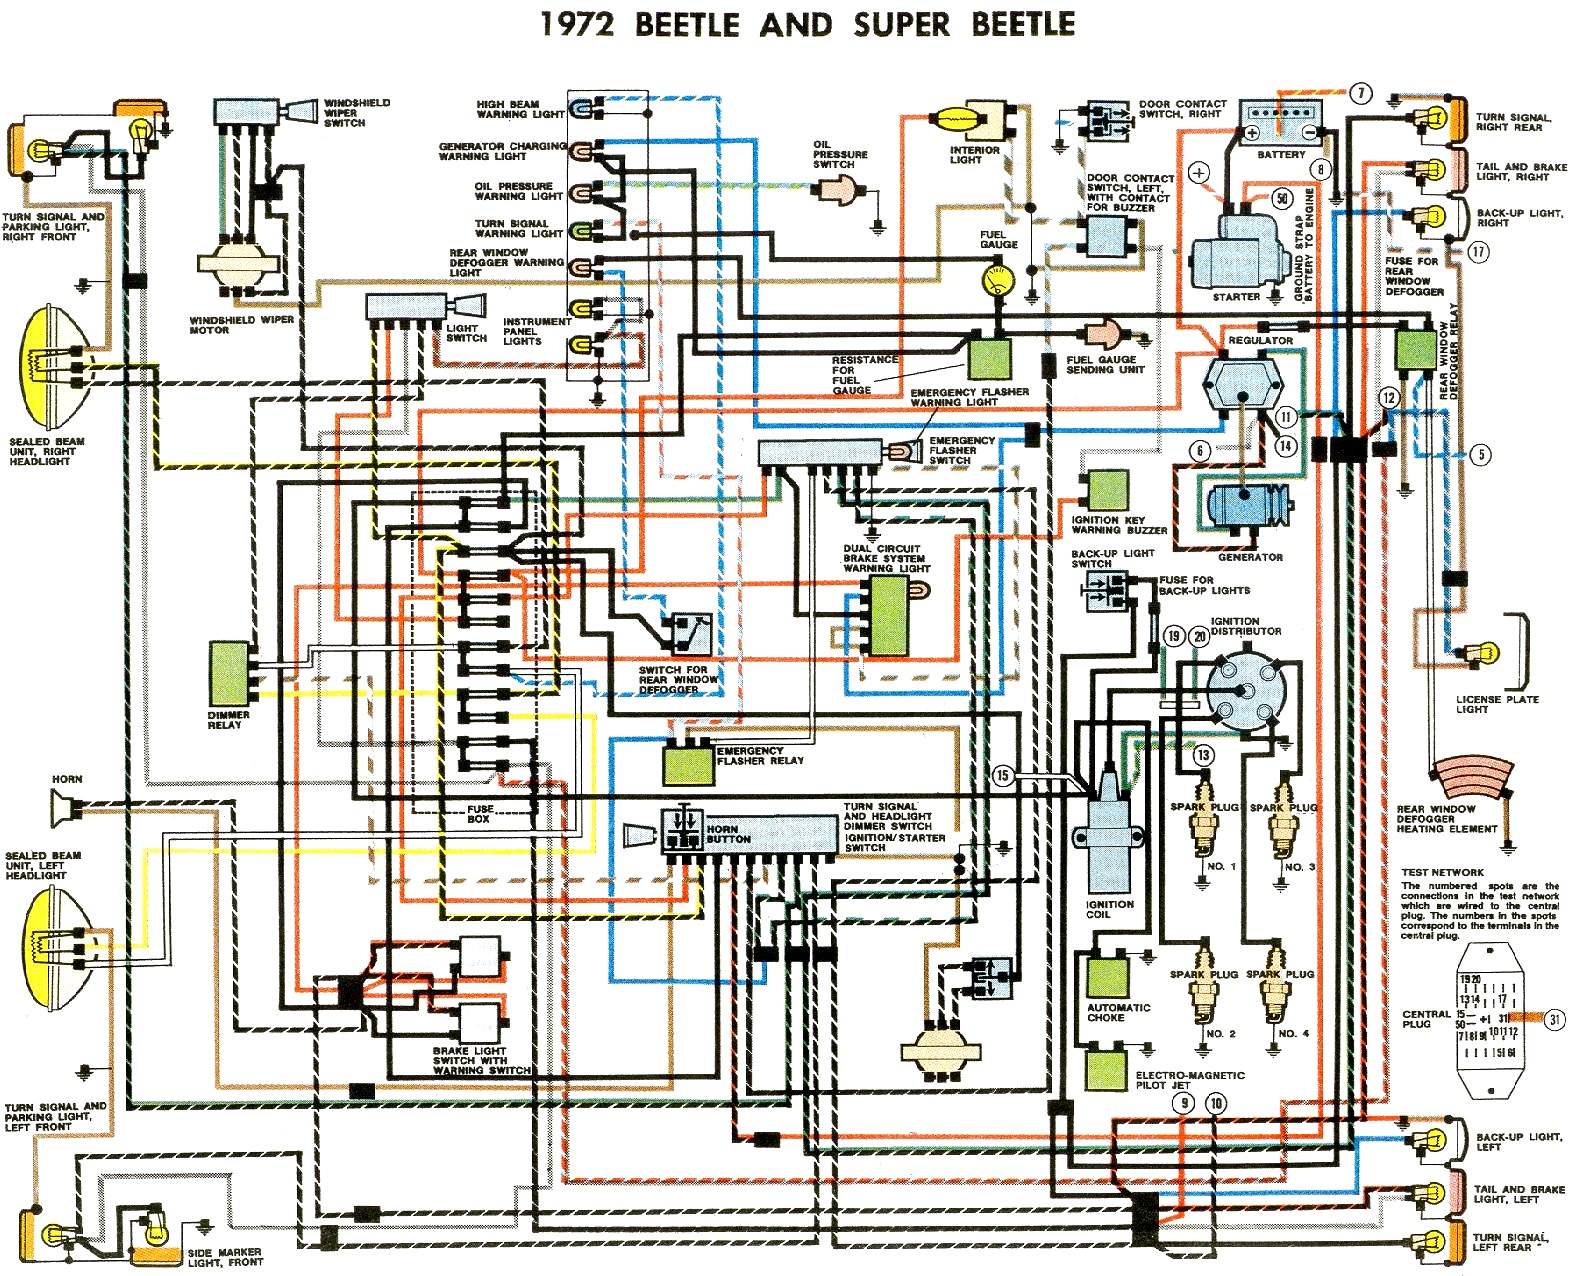 1972 beetle wiring diagram thegoldenbug com rh thegoldenbug com 1972 vw super beetle fuse box diagram